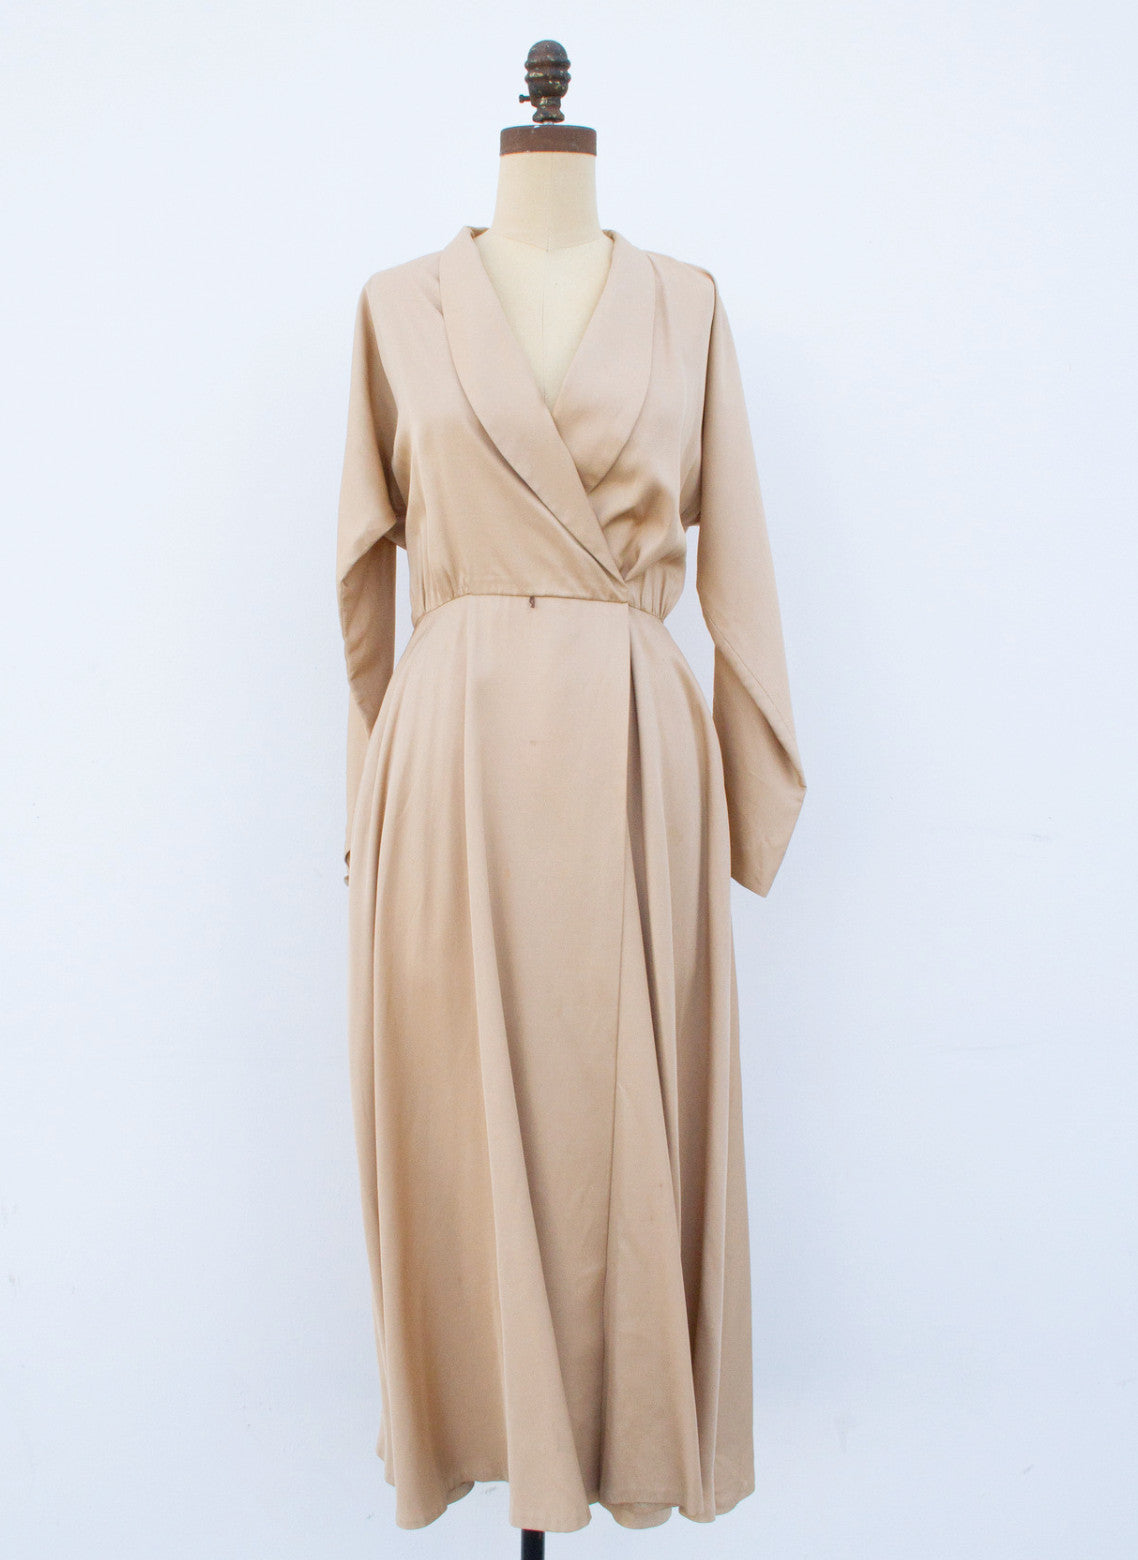 1980s Golden Beige Rayon Dress Jacket